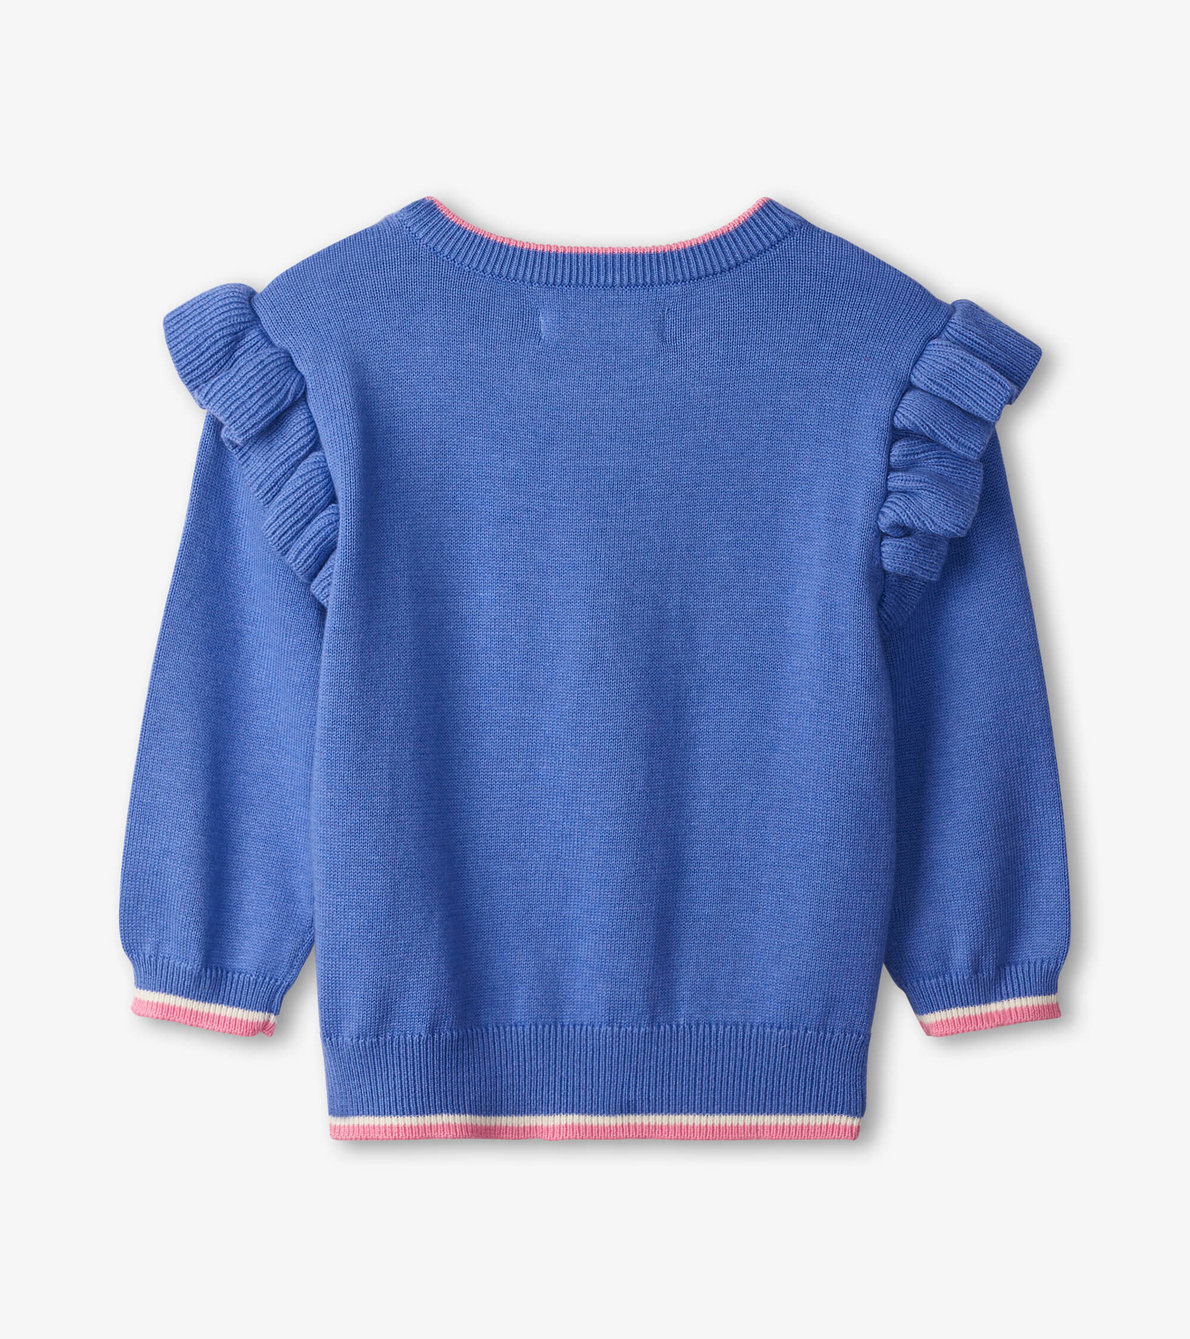 View larger image of Apple Baby Ruffle Sleeve Sweater